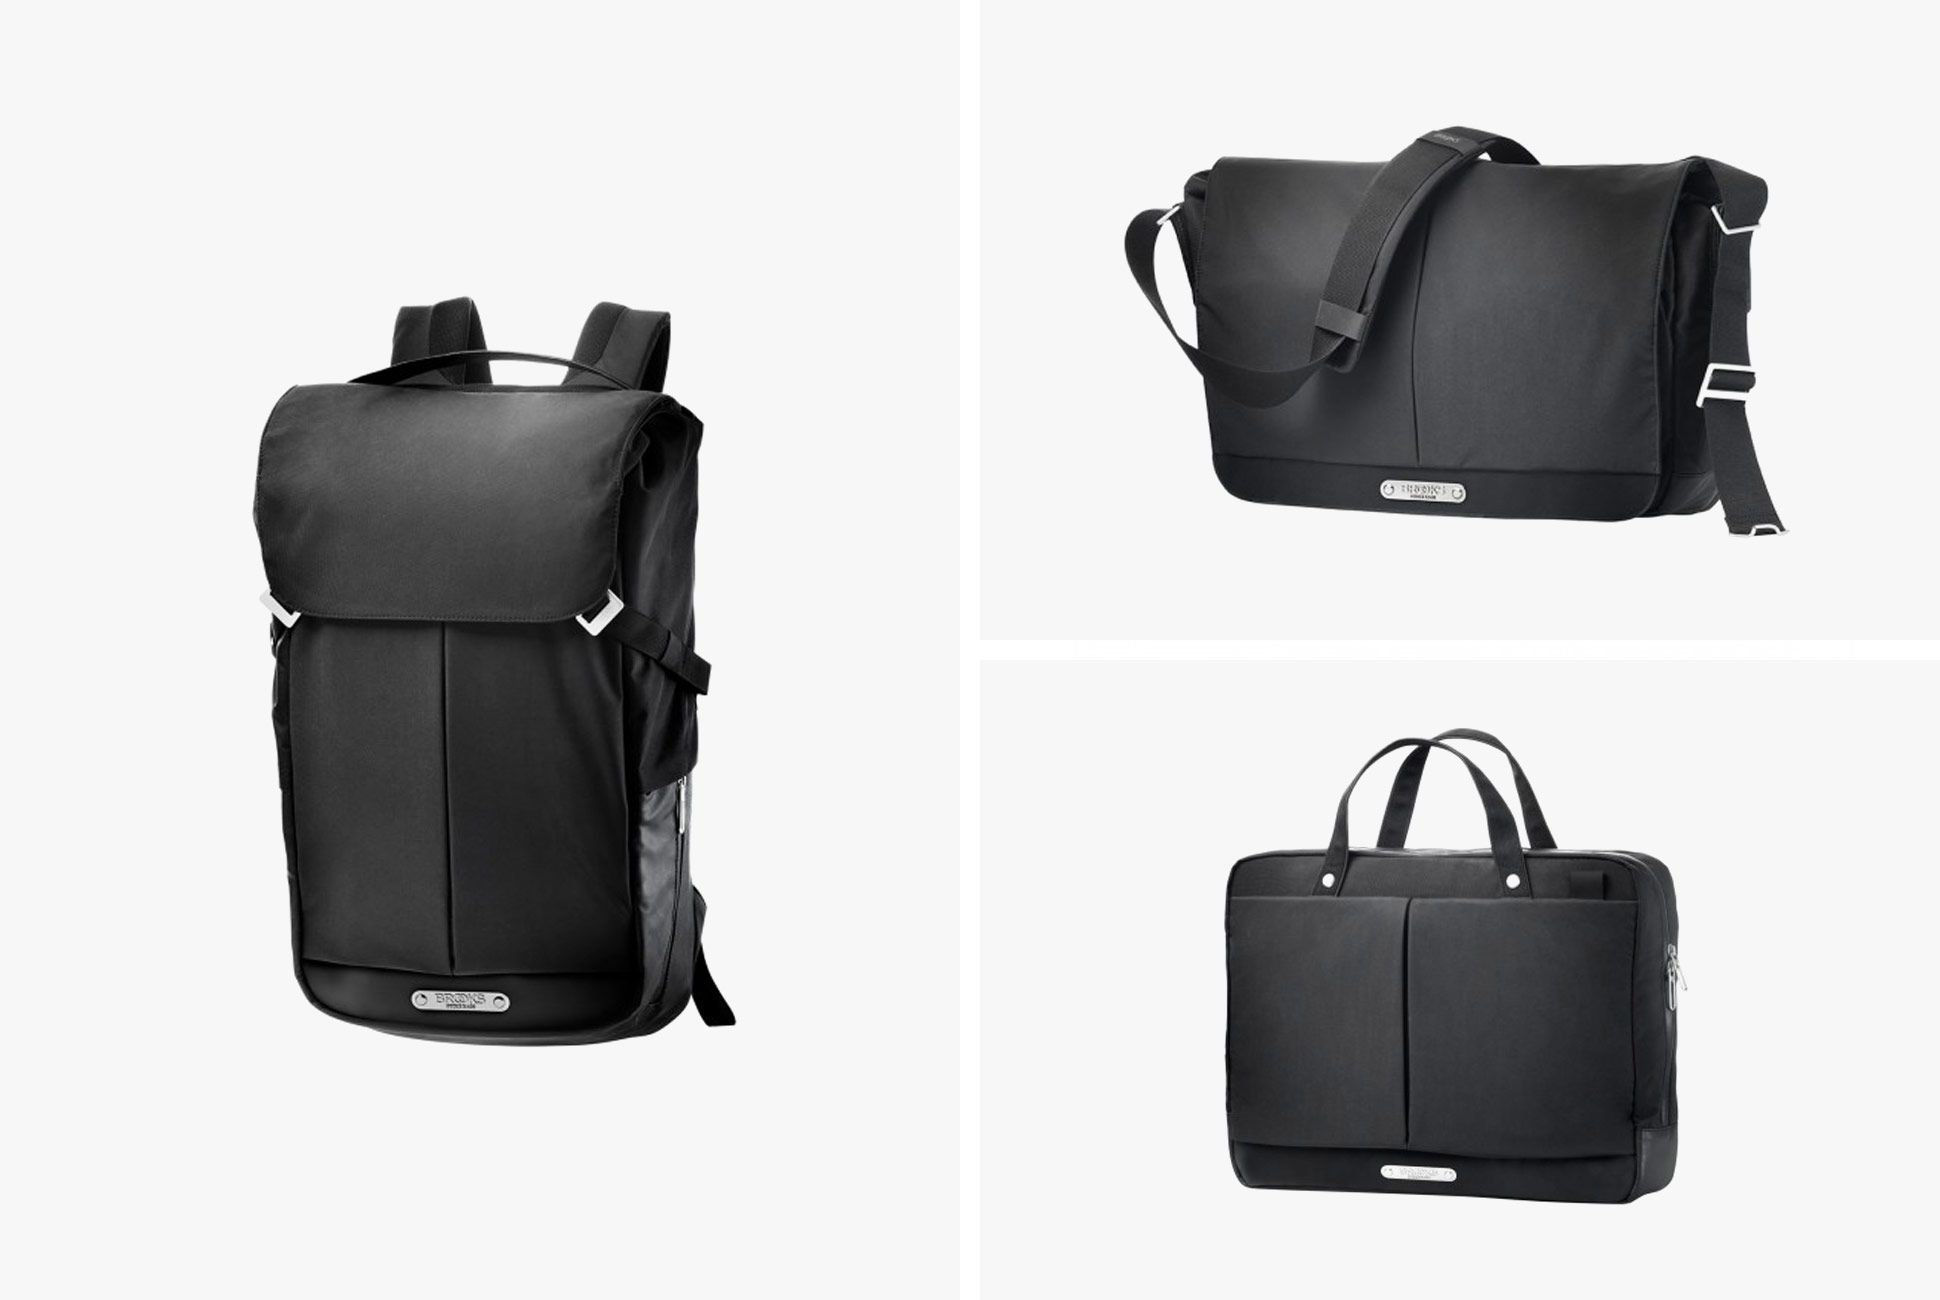 Download Brooks Just Launched A Drop Dead Gorgeous Line Of New Bags Bags Range Bag Best Bags